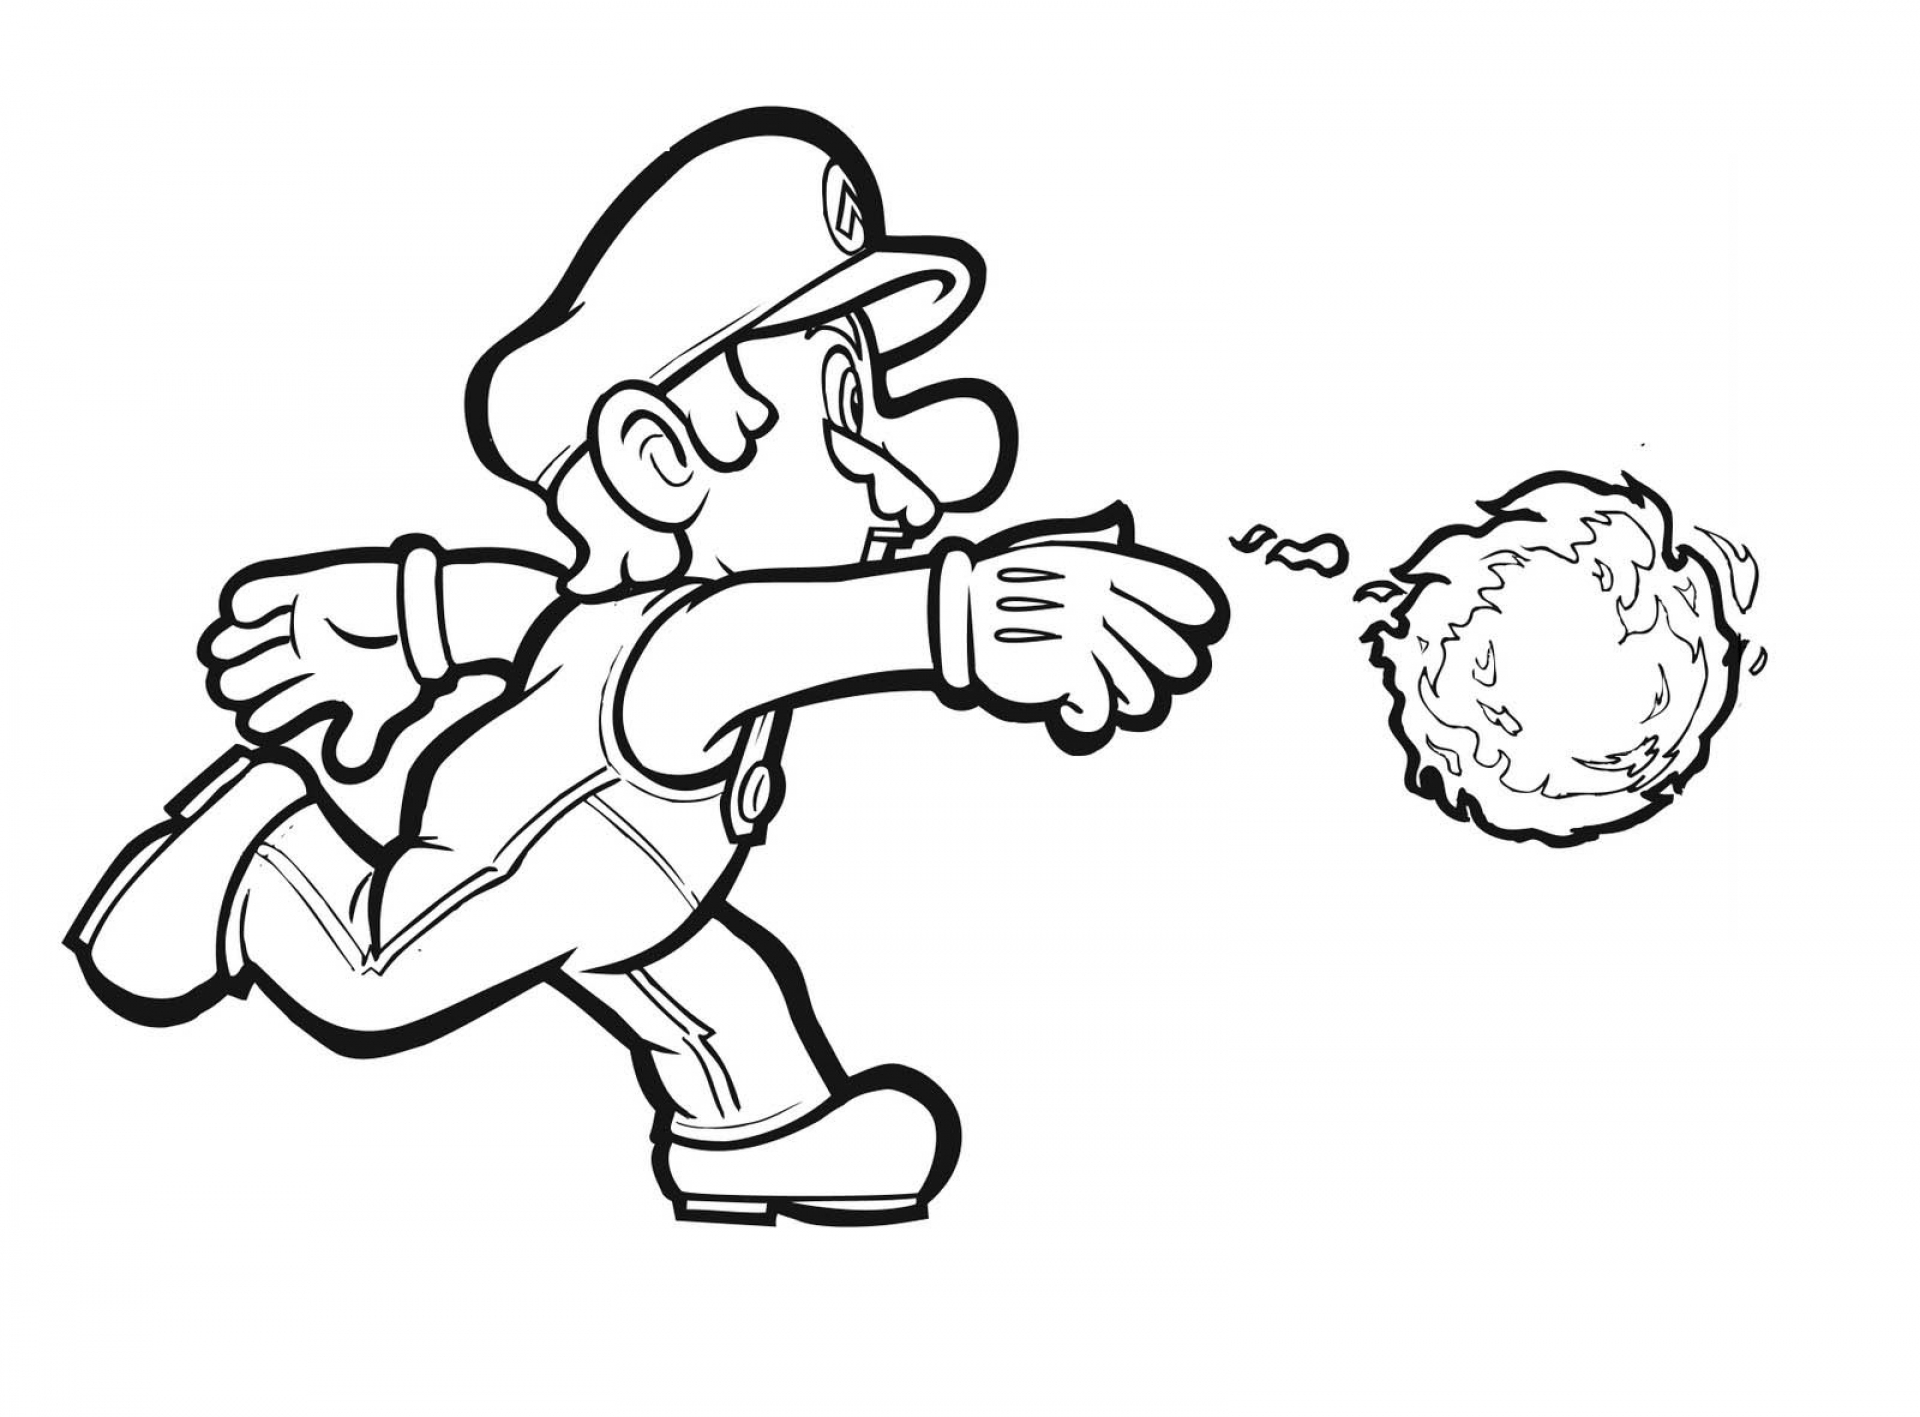 1920x1417 Printable Mario Galaxy Coloring Pages Free Coloring Pages Download